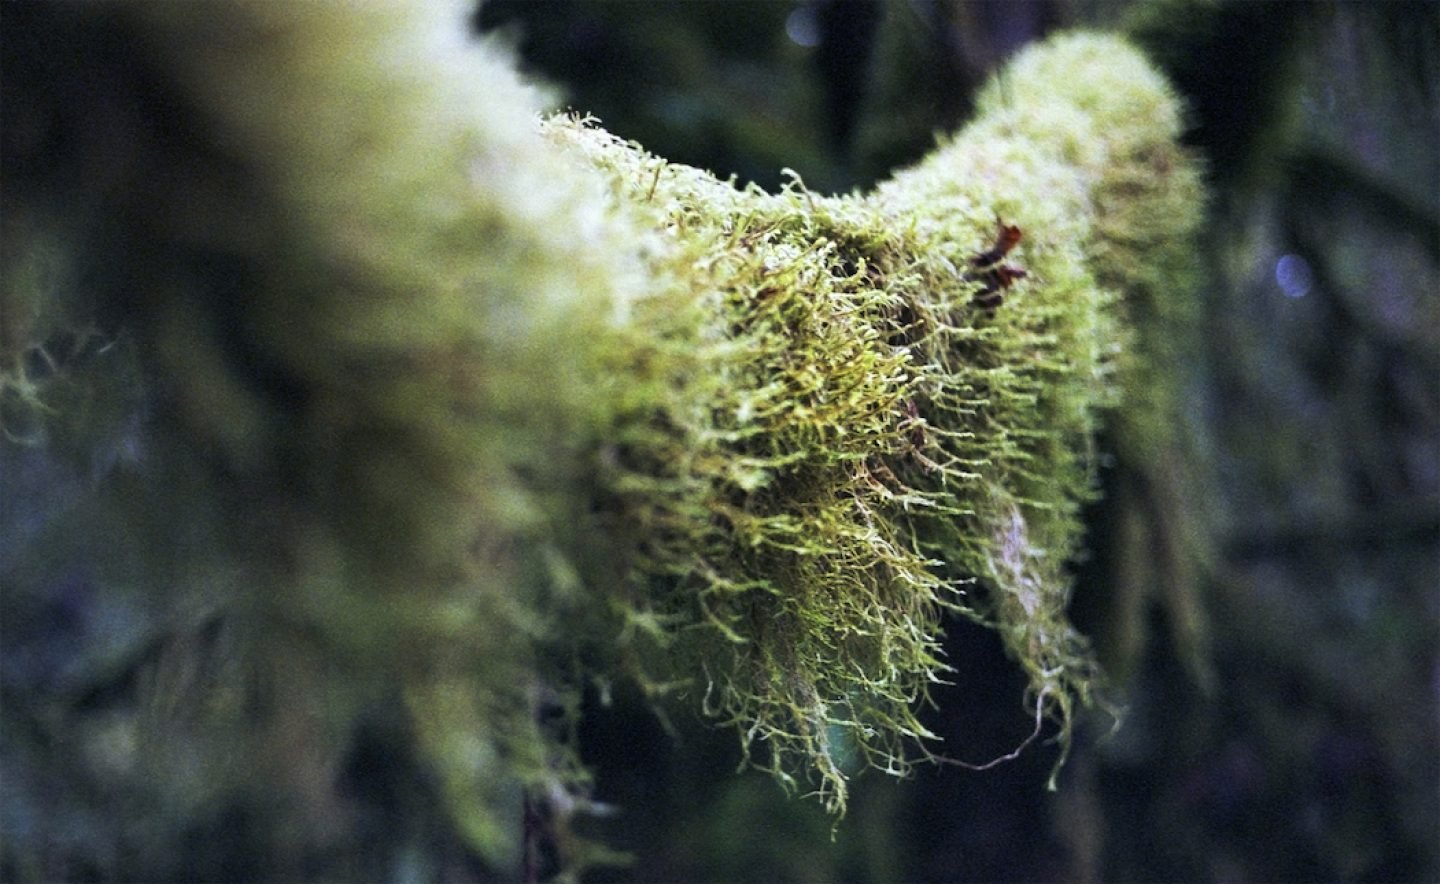 023_cathedralmoss_cji